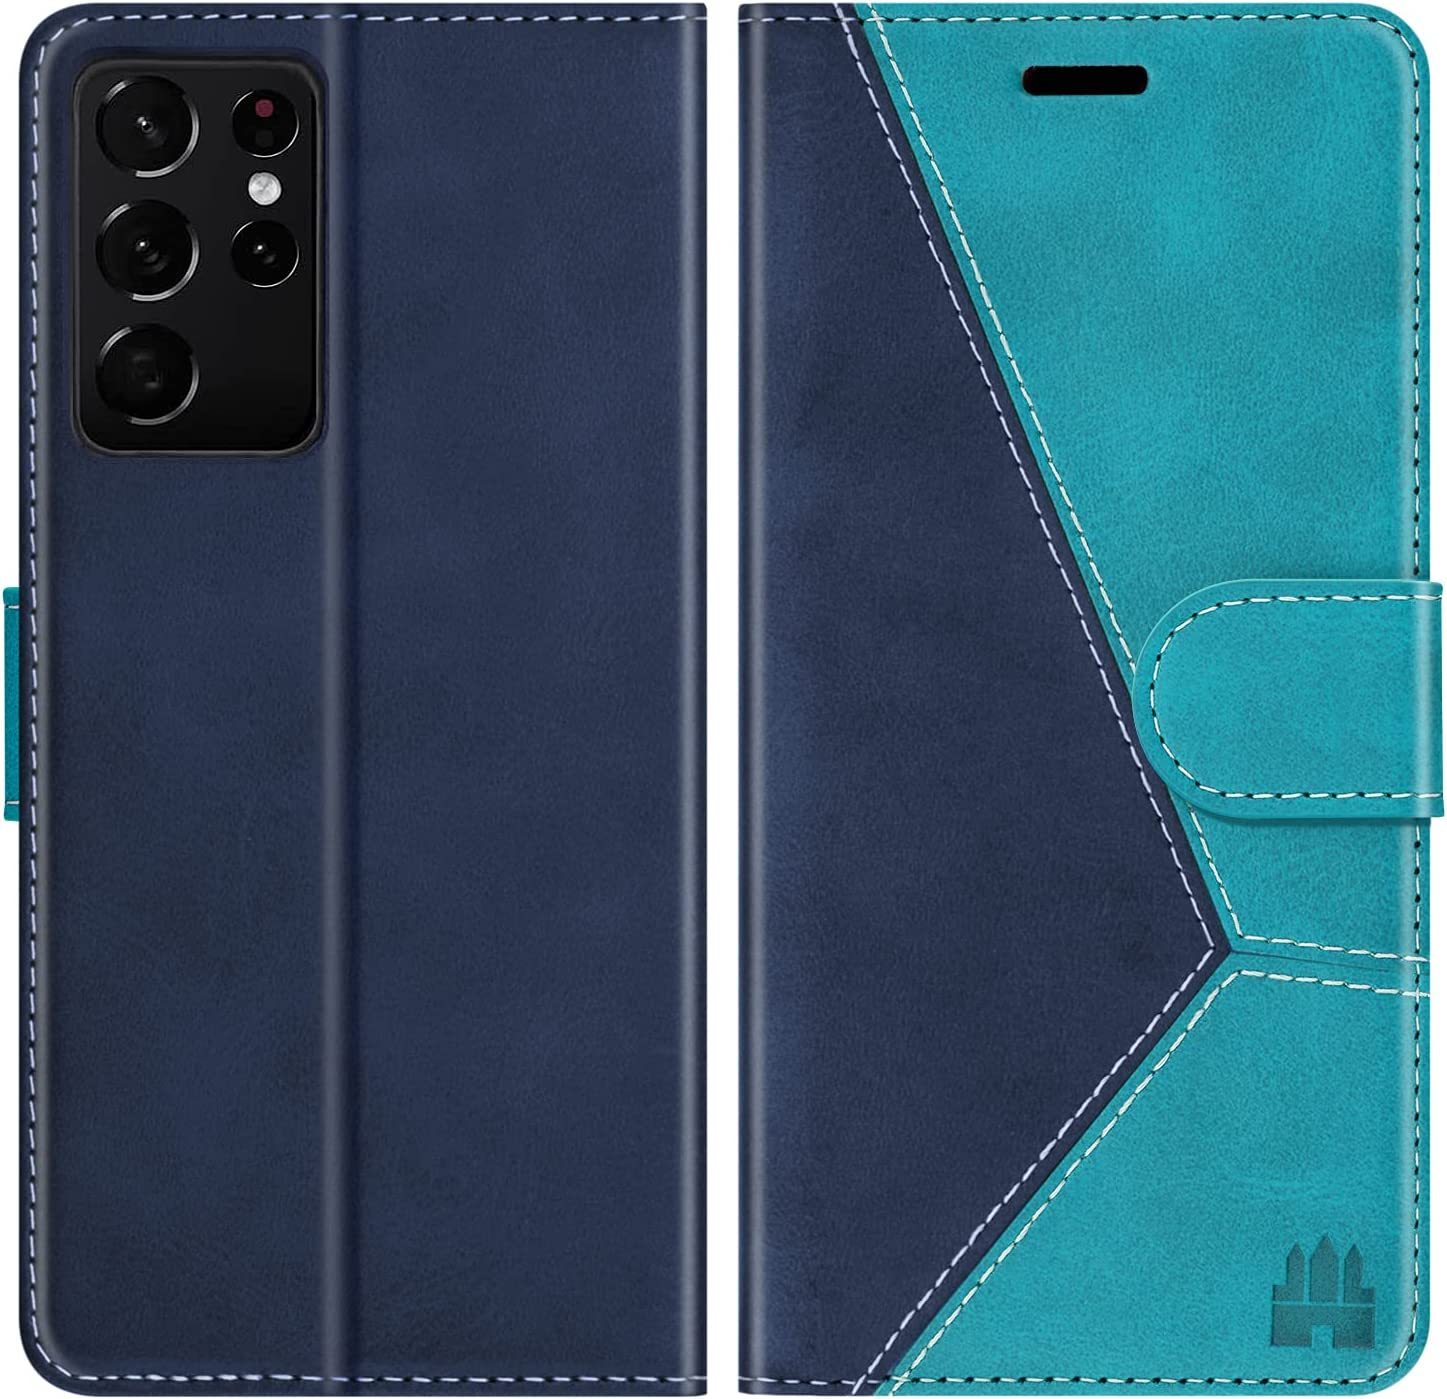 Caislean Wallet Case for Samsung Galaxy S21 Ultra 5G, [RFID Blocking] Card Holder Flip Cover [Shockproof TPU Inner Shell] [Kickstand] Magnetic Protective PU Leather Folio Folding Case 6.8 inch, Blue